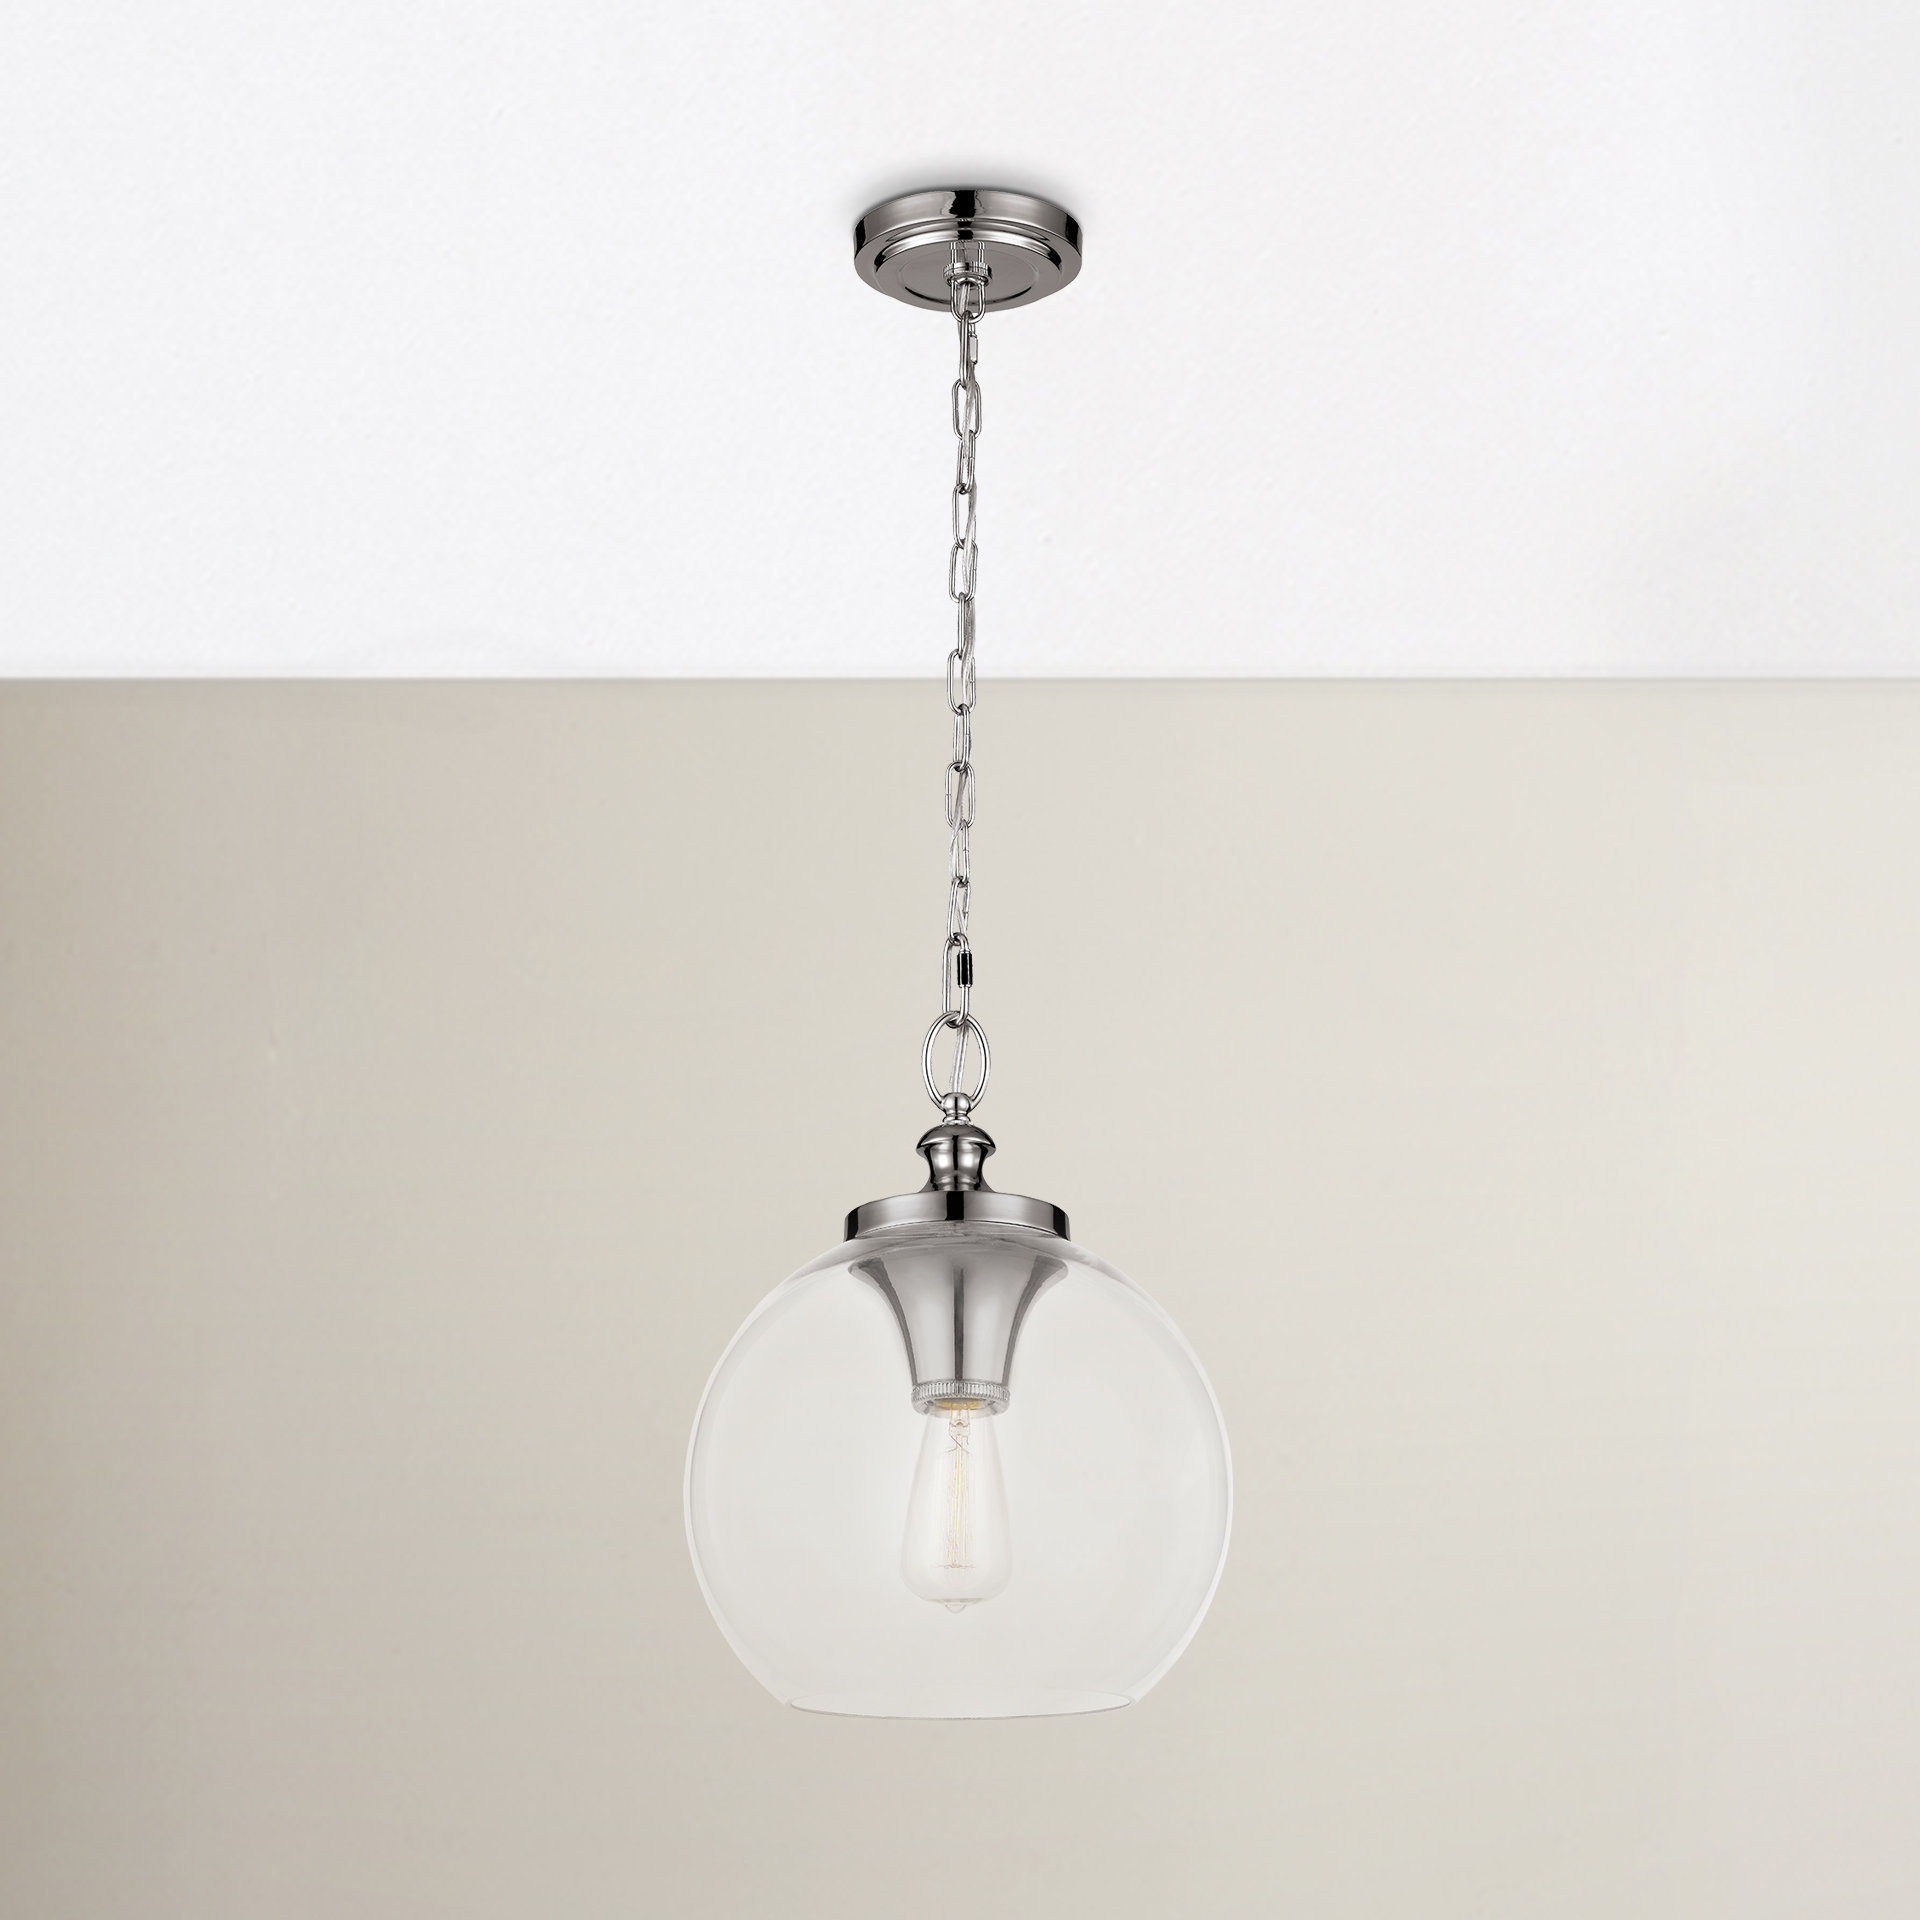 Asellus 1 Light Single Globe Pendant With Regard To Betsy 1 Light Single Globe Pendants (View 5 of 30)